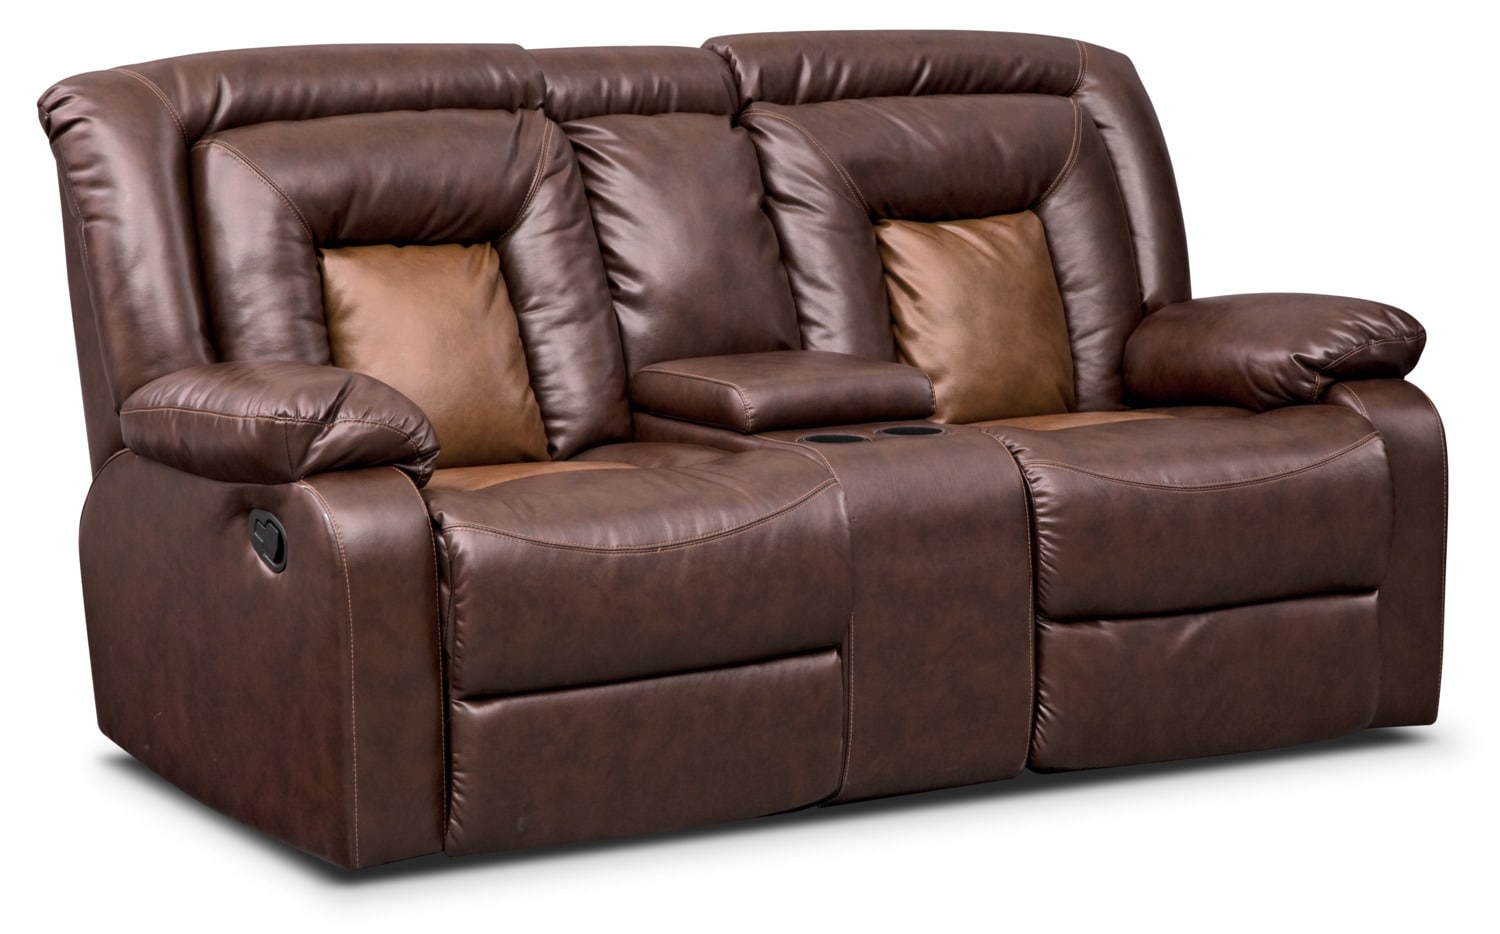 Mustang dual reclining sofa dual reclining loveseat and recliner set brown american Chocolate loveseat